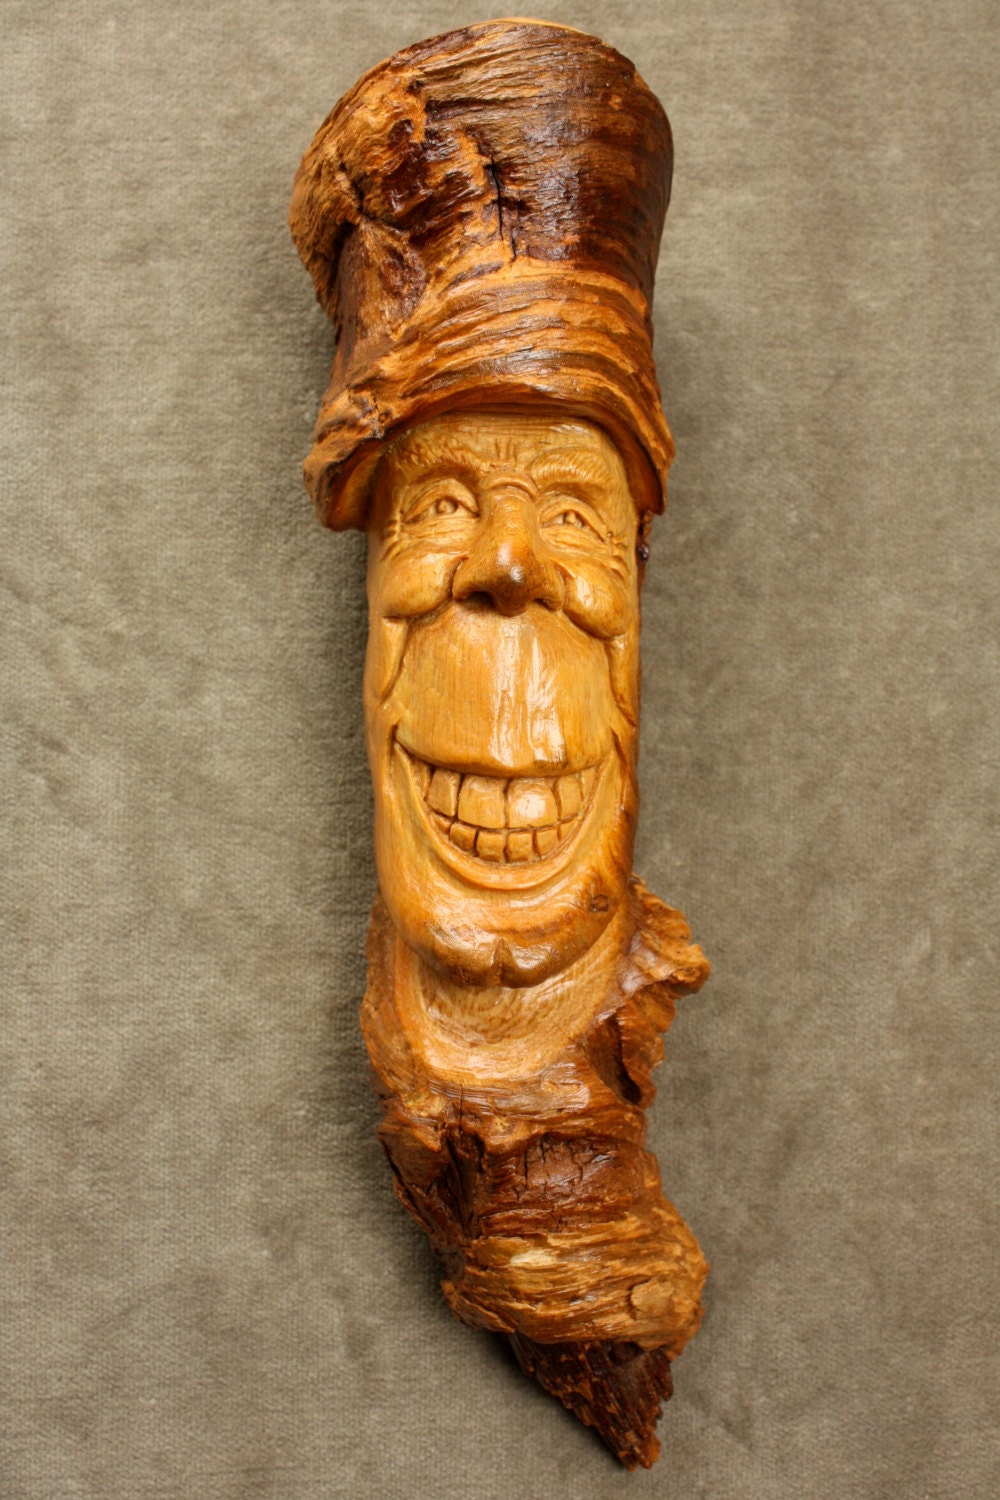 Wood spirit carving art ooak birthday gift by